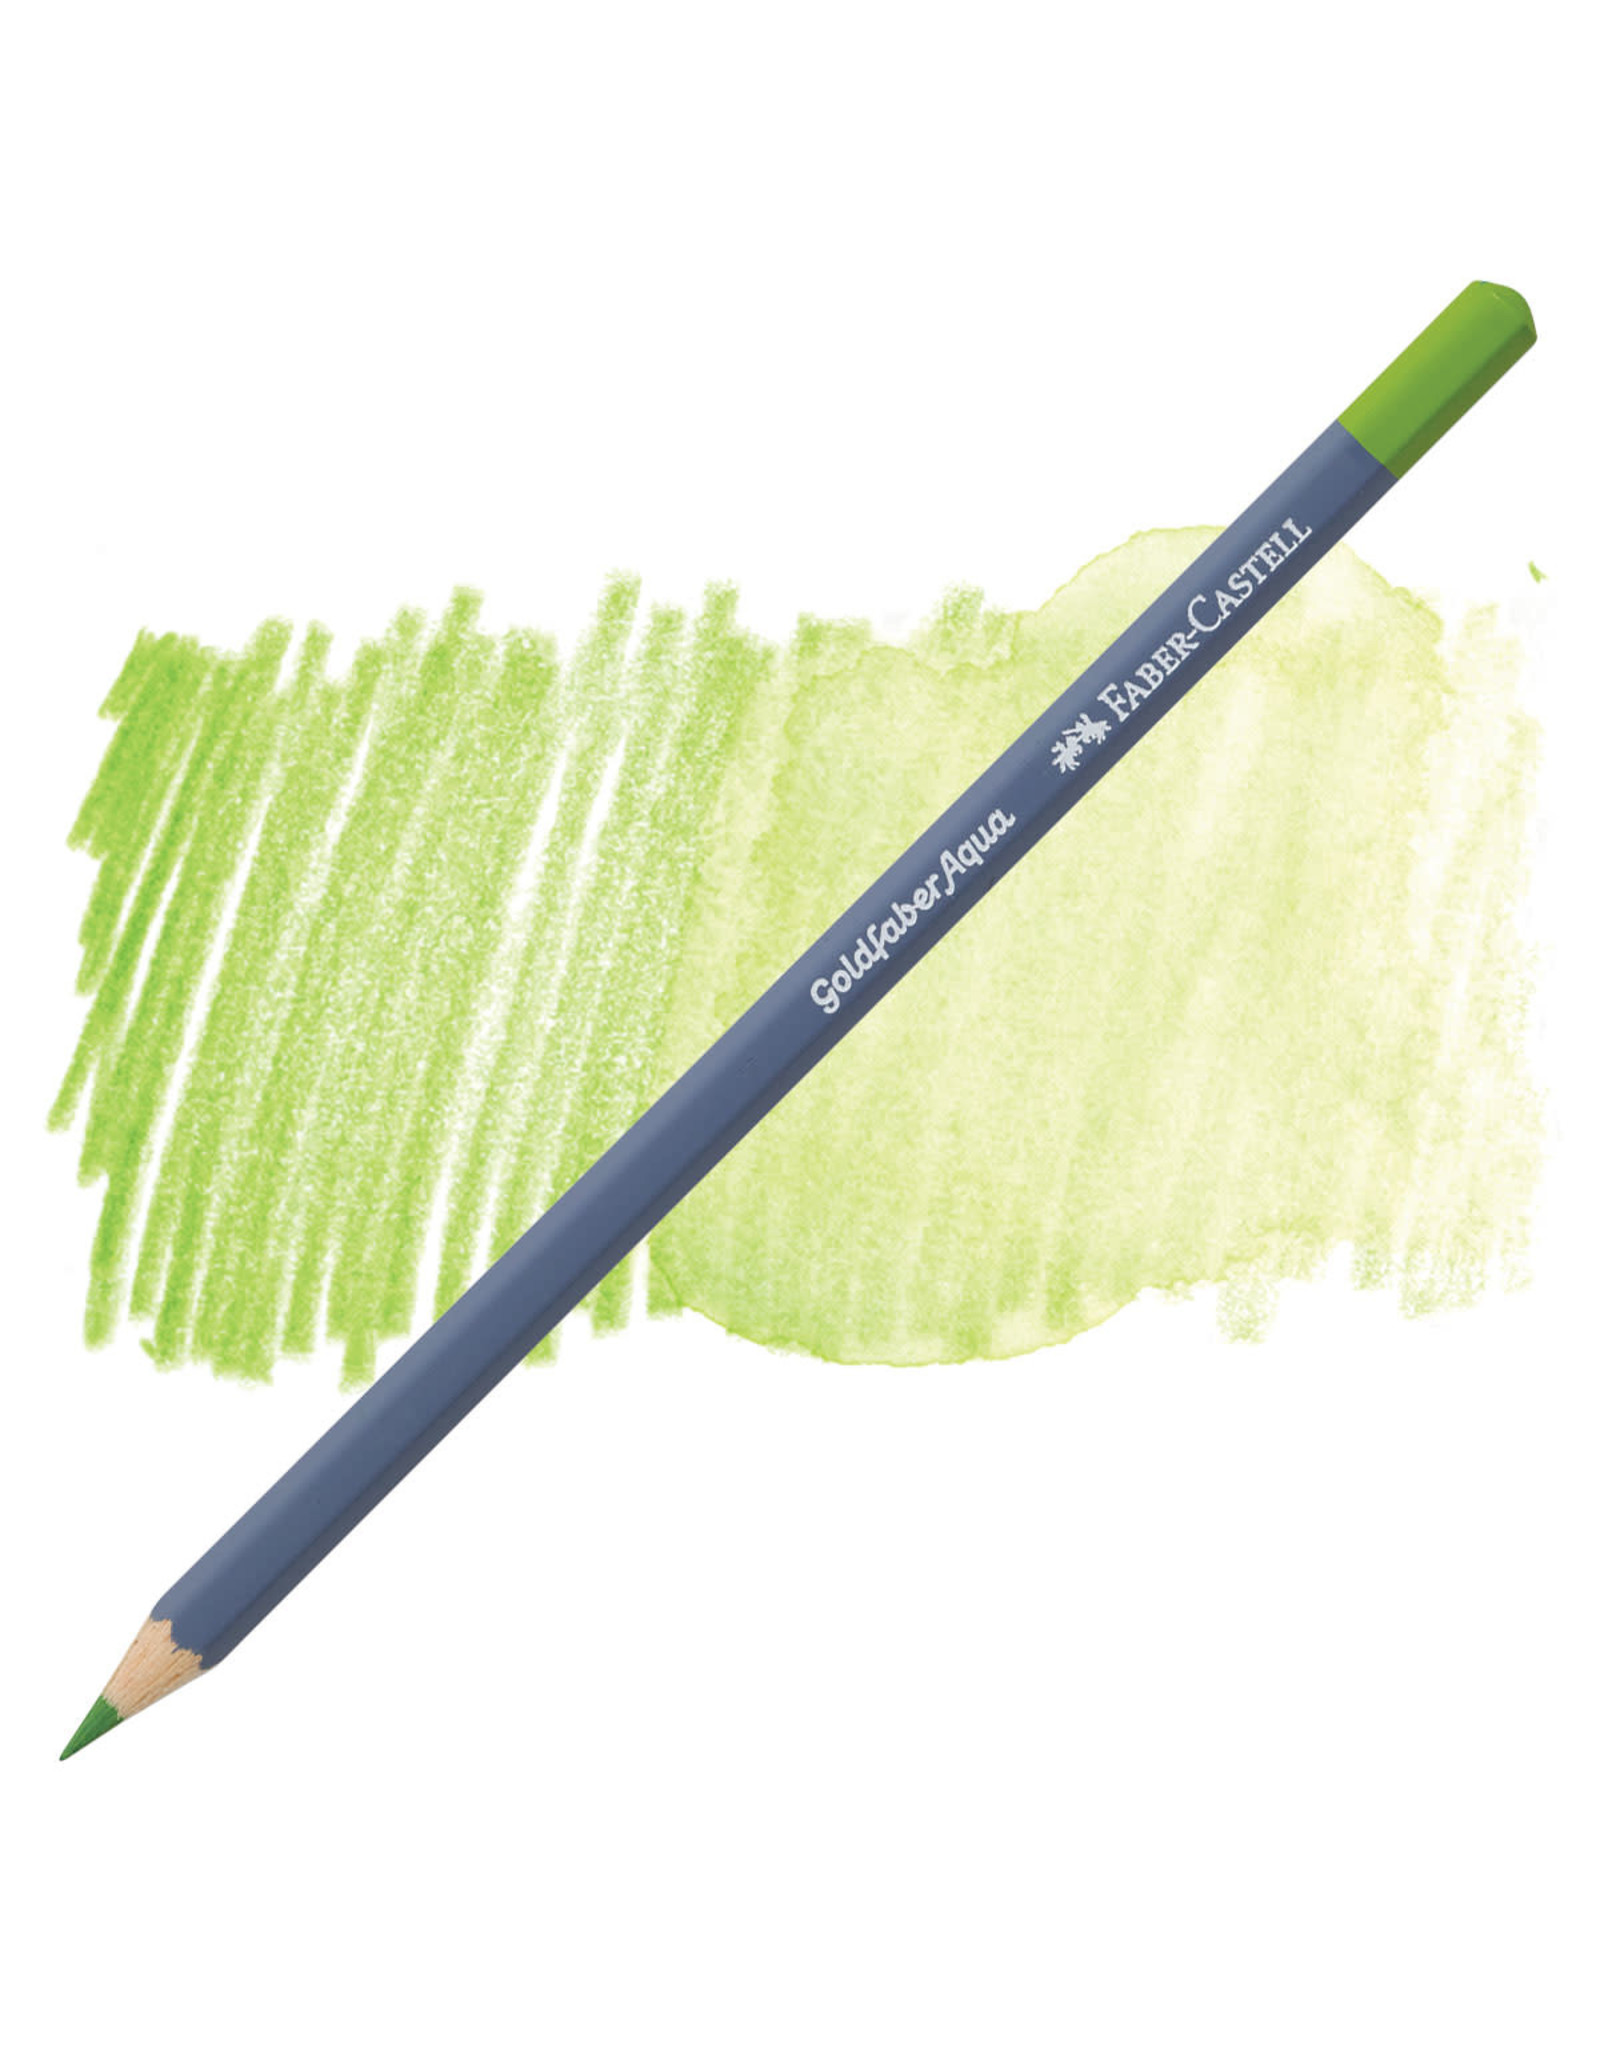 Faber-Castell Goldfaber Colored Pencil - May Green #170